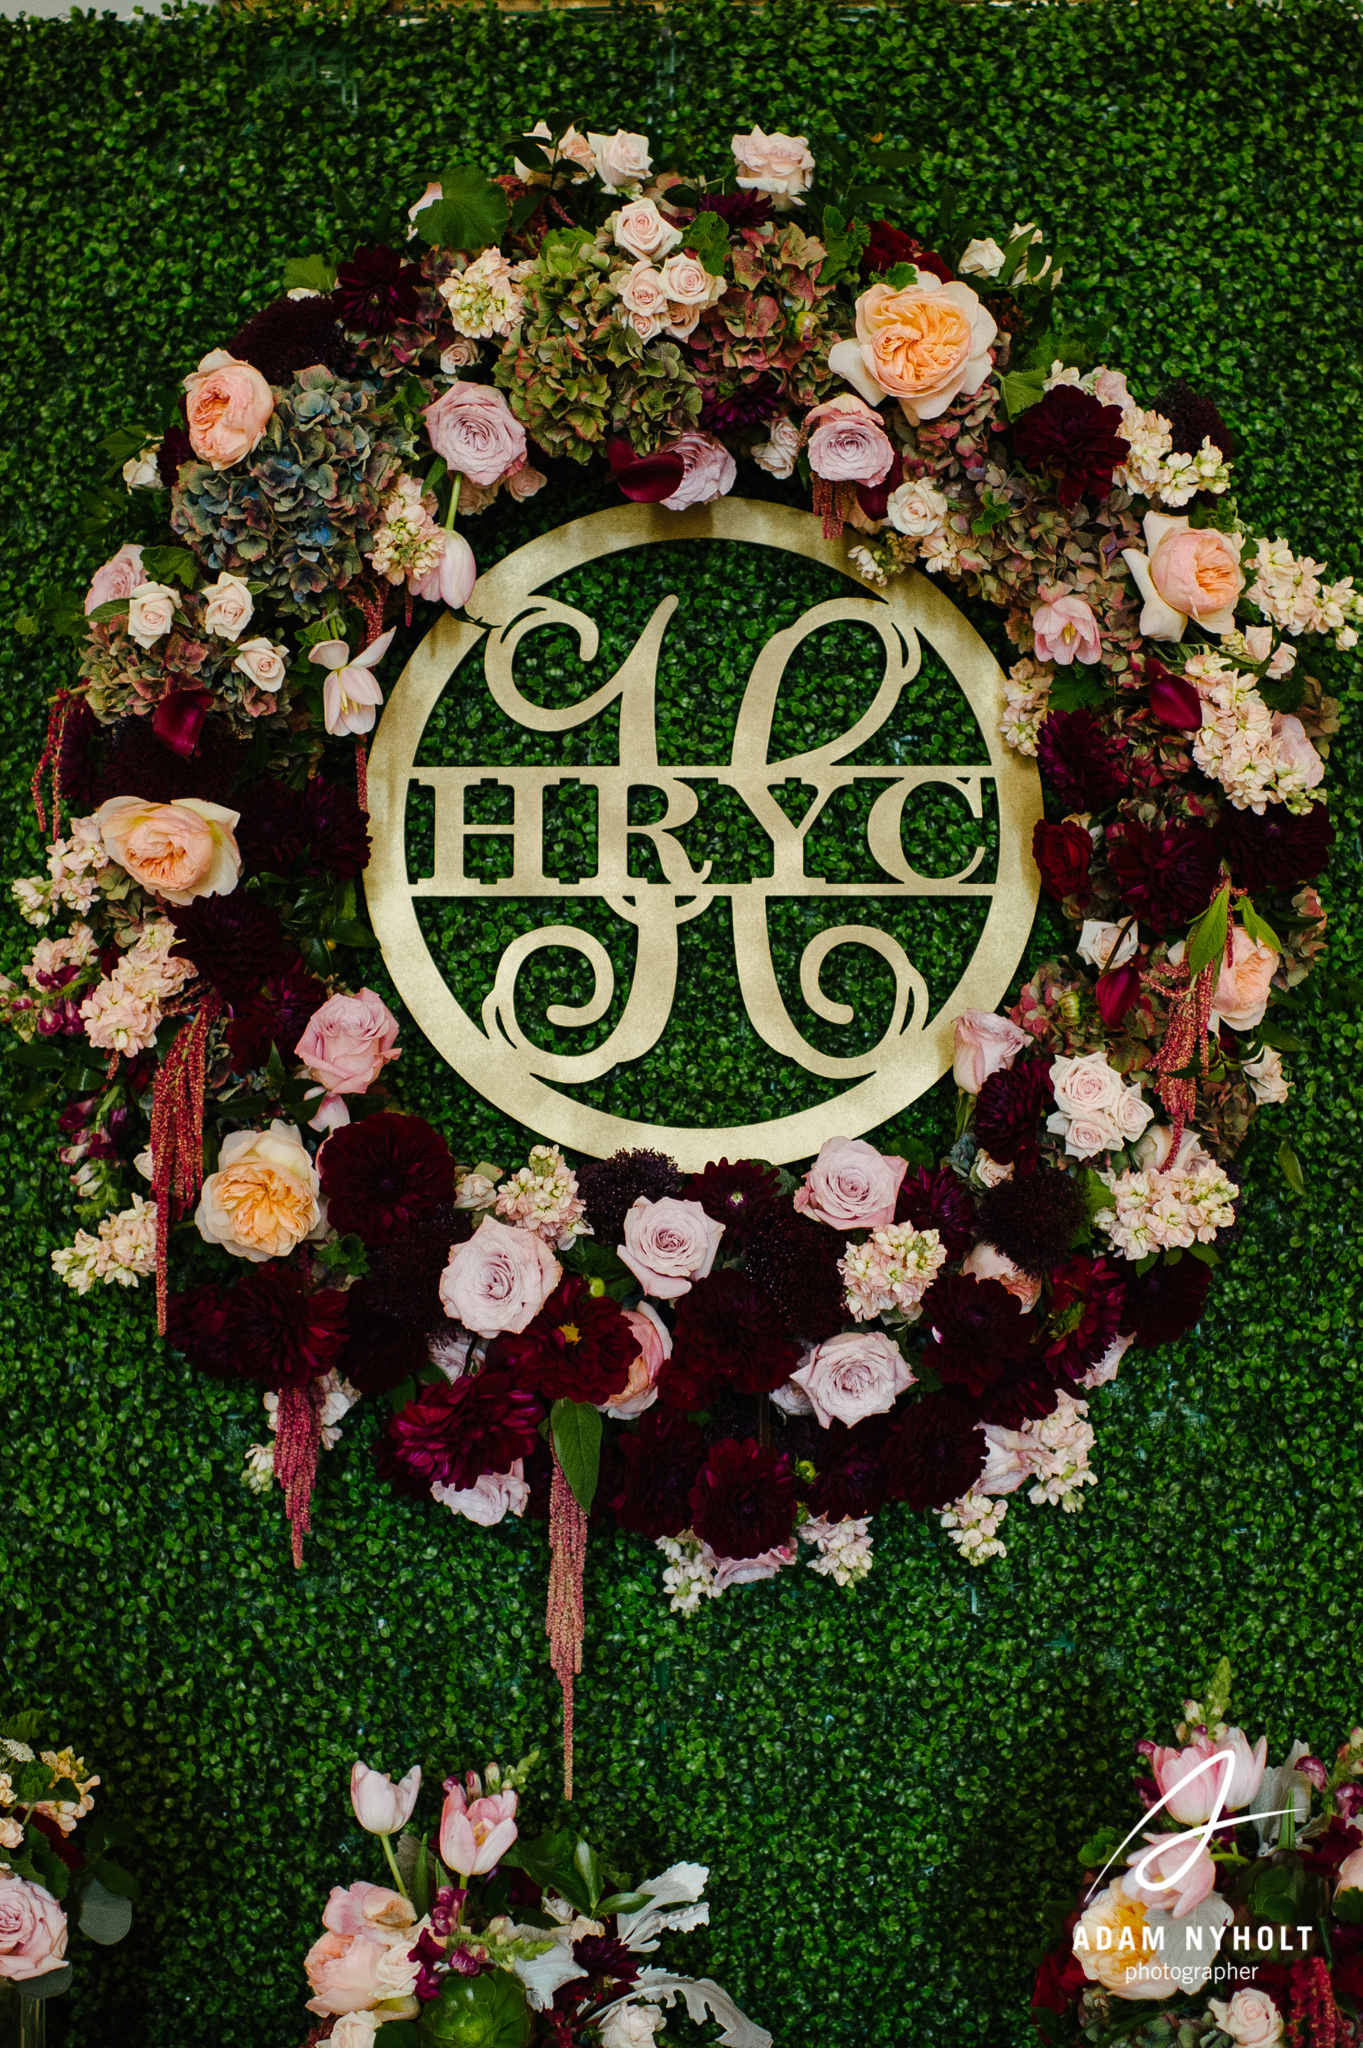 Floral Wreath around monogram at wedding - flower wall